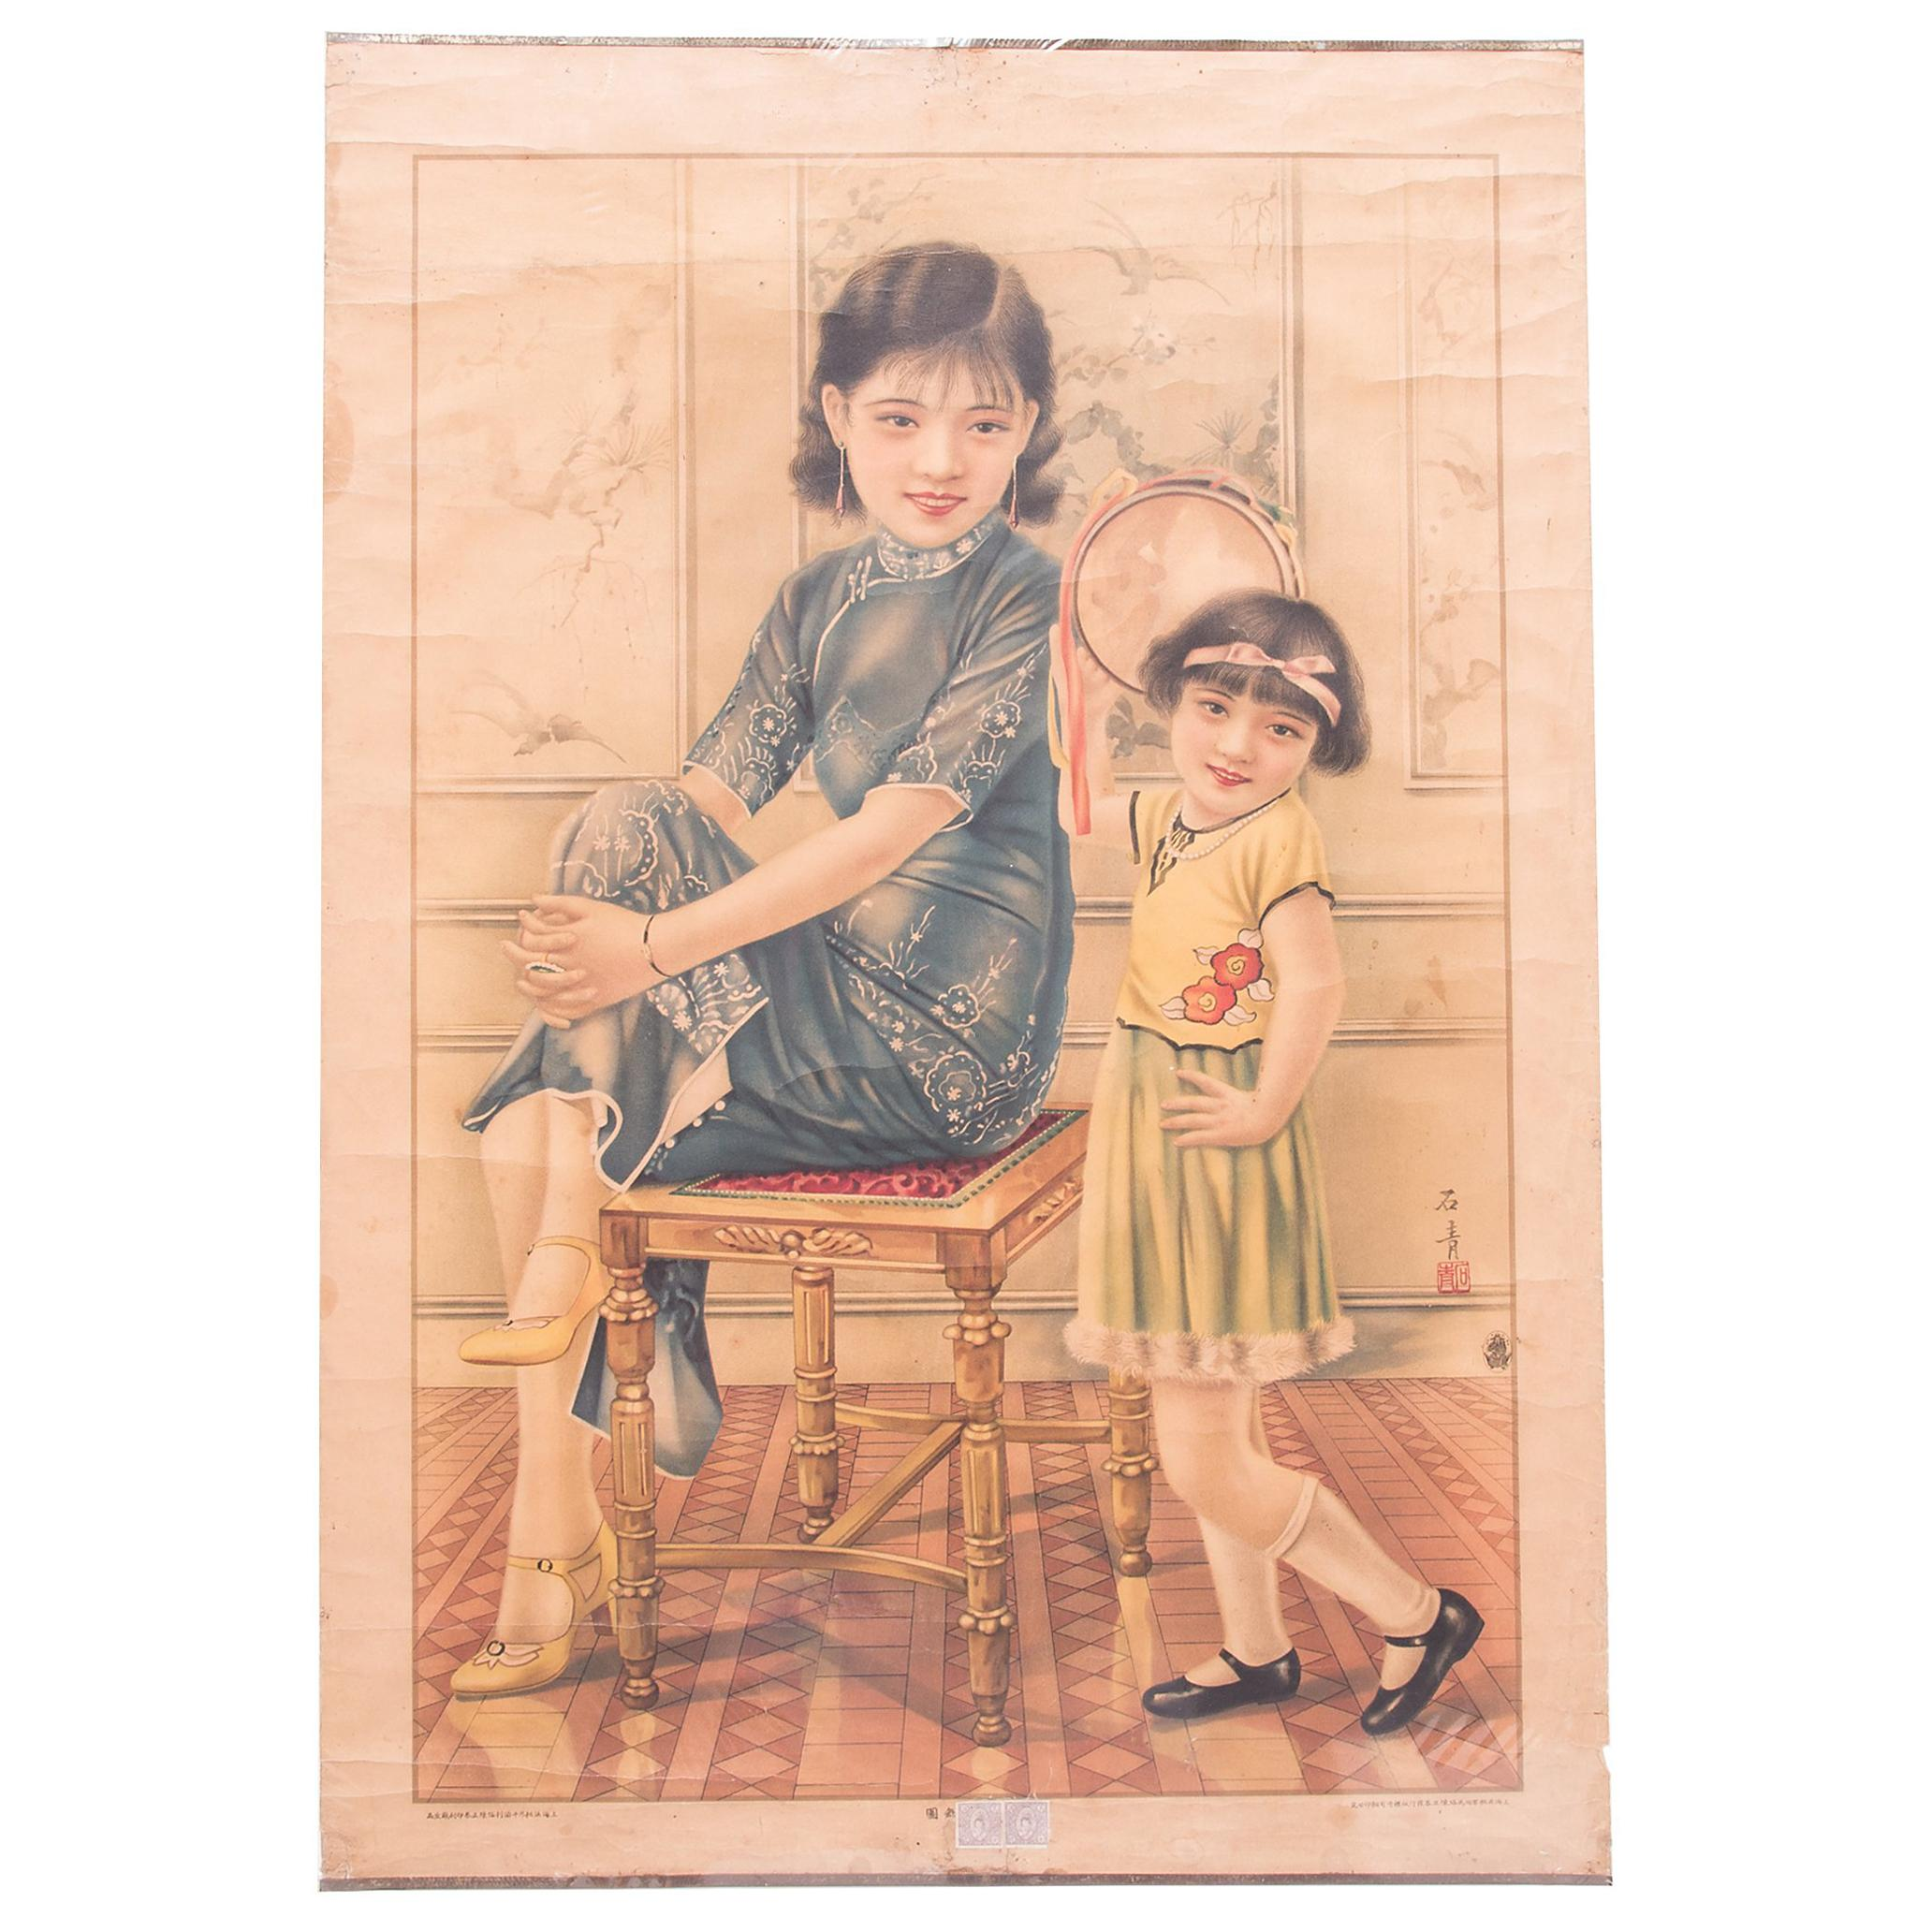 Vintage Chinese Lithograph Advertisement Poster